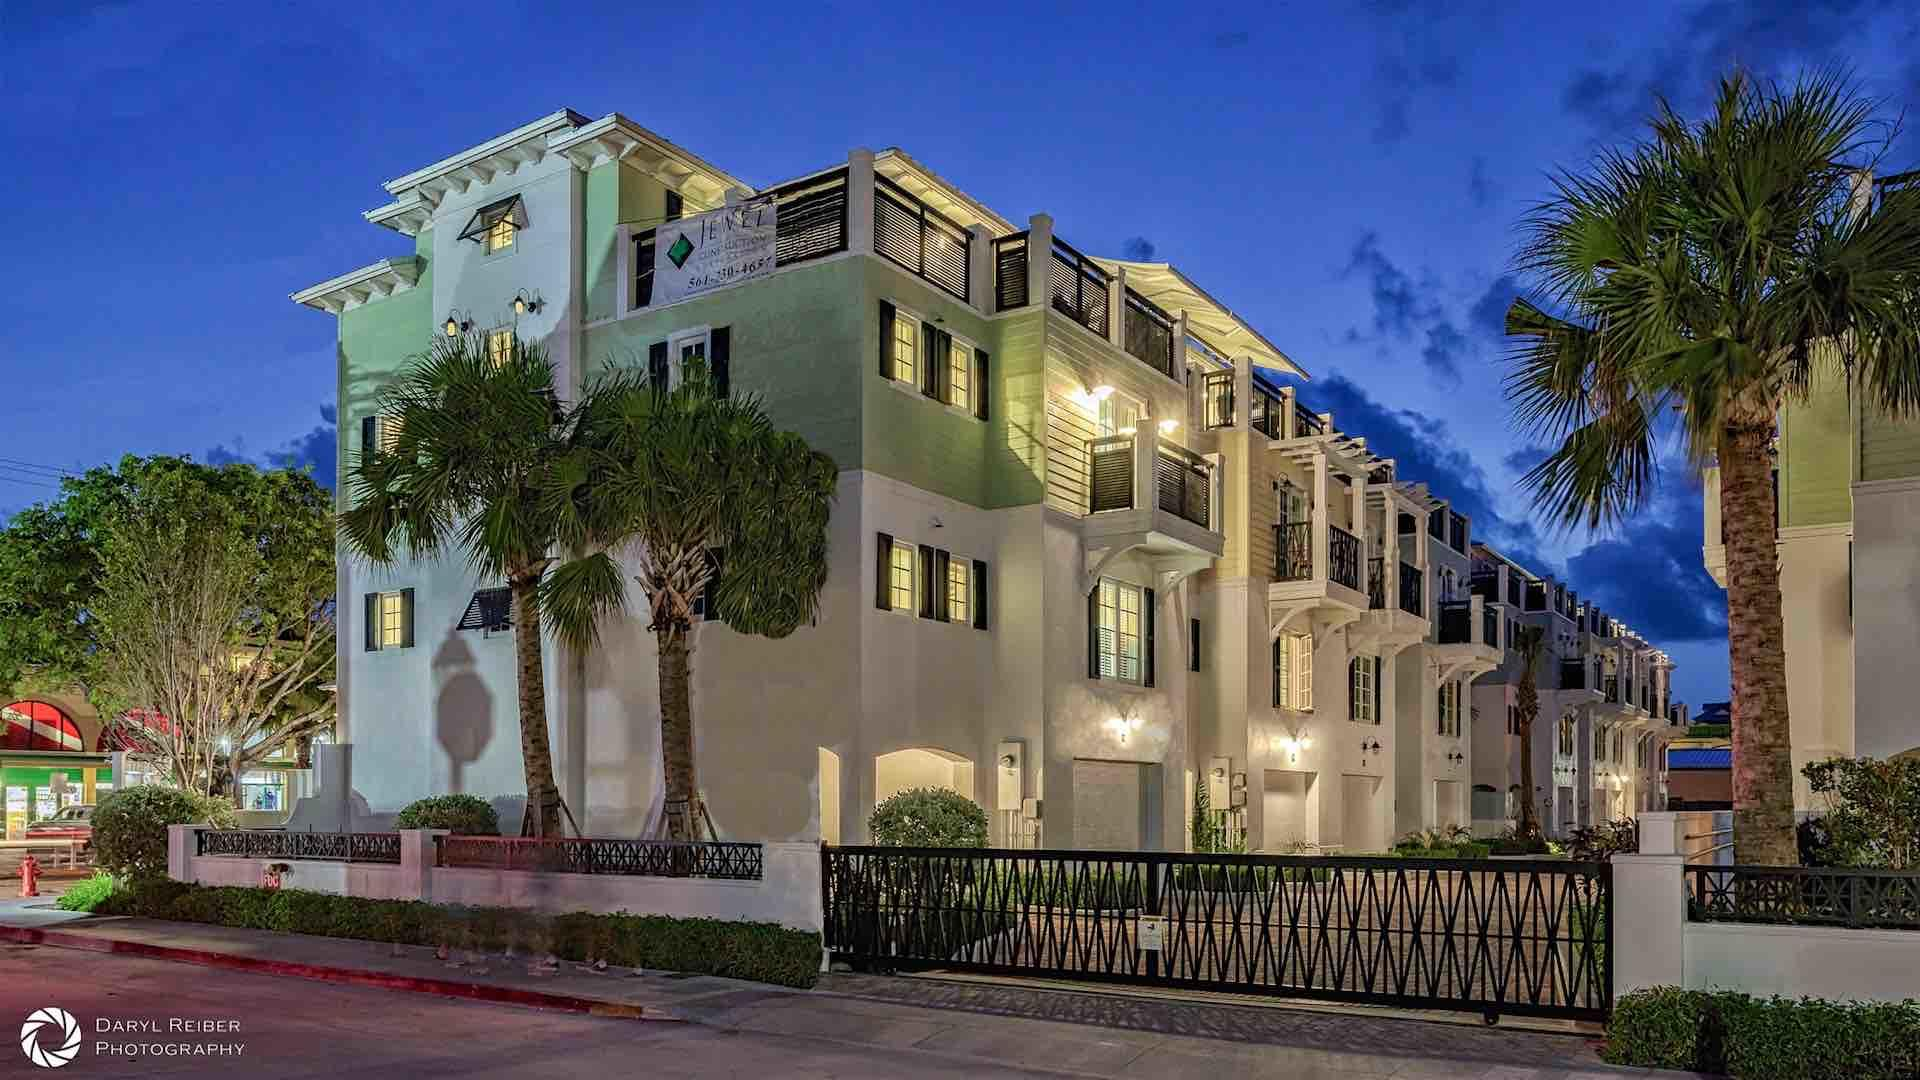 Heart of the Harbor is located at Old Town Villas, a luxury gated community...